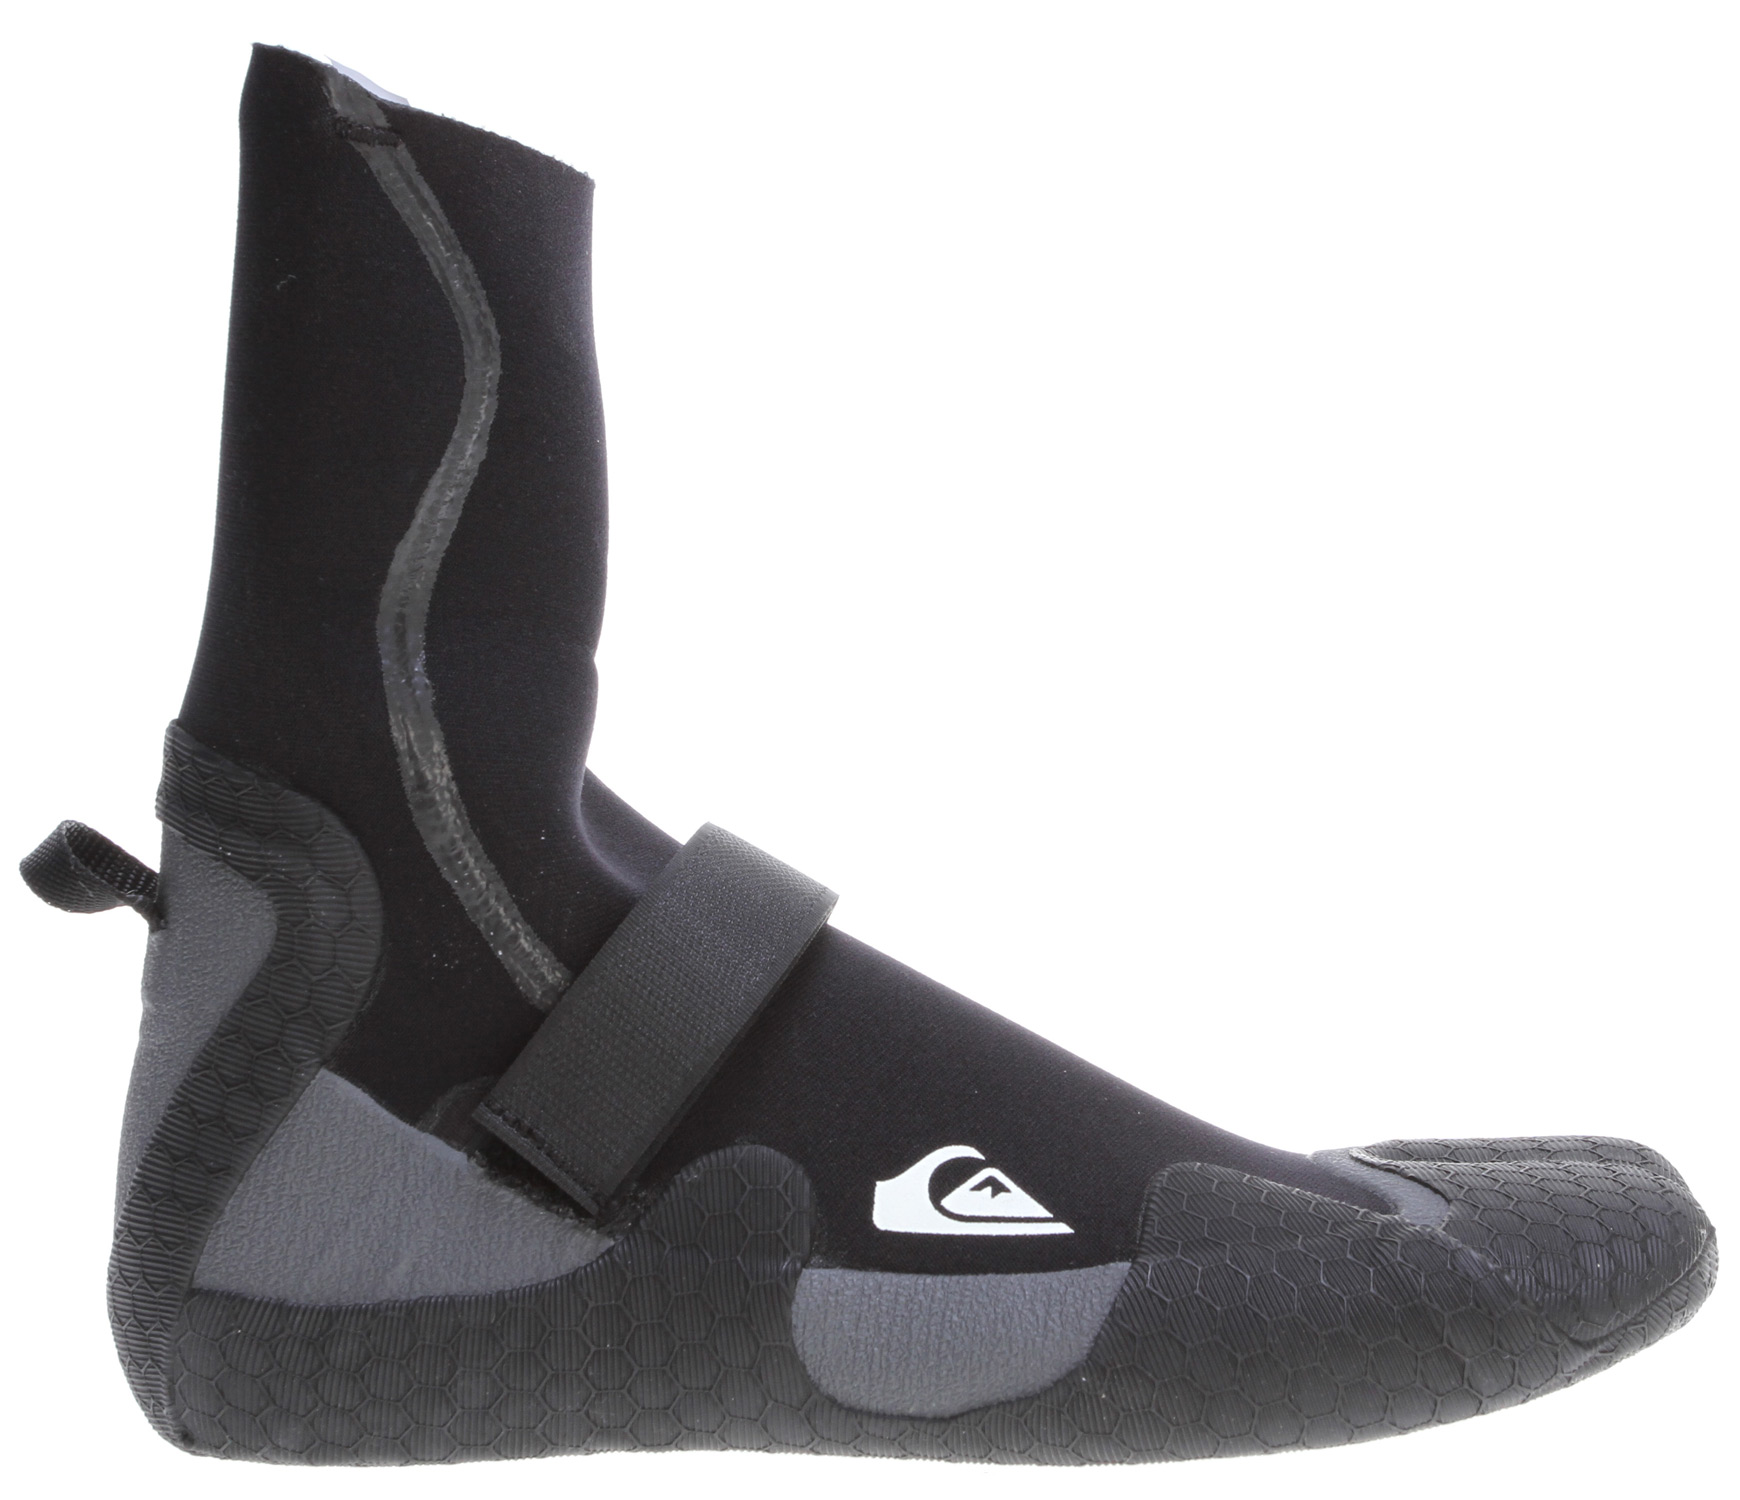 Surf Key Features of the Quiksilver Syncro 3mm Split Toe Booties: 100% freemax superstretch GBS (glued and blindstitched) Textured soft sole - $39.95